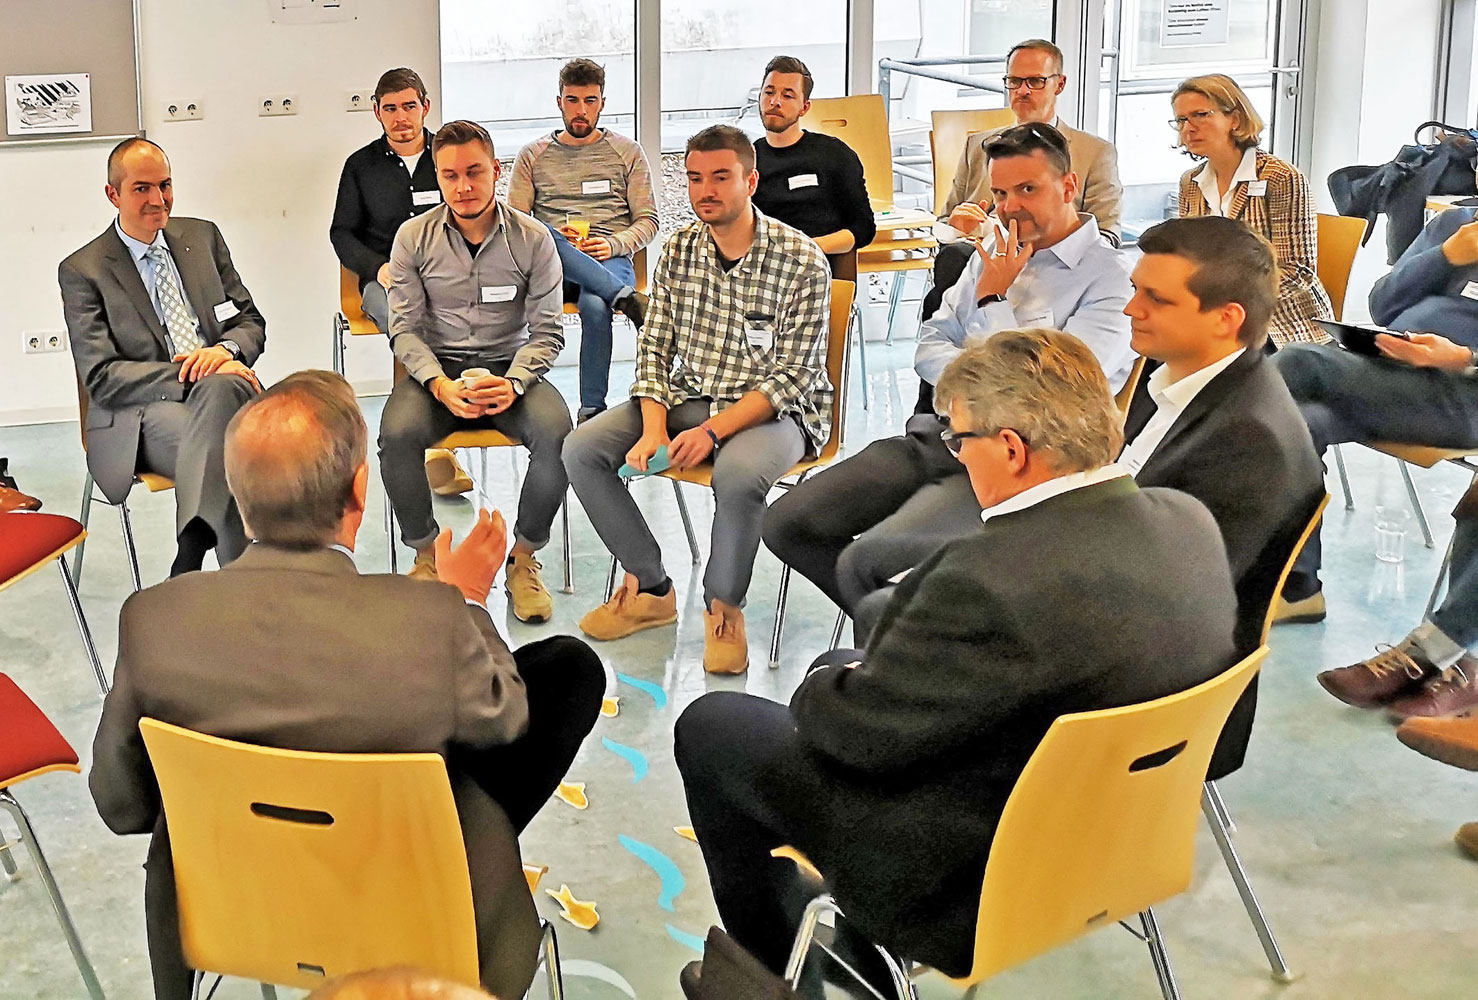 Diskussion in der InnovationsWerteFishbowl 2018 (Foto FHWS / Schöffler)